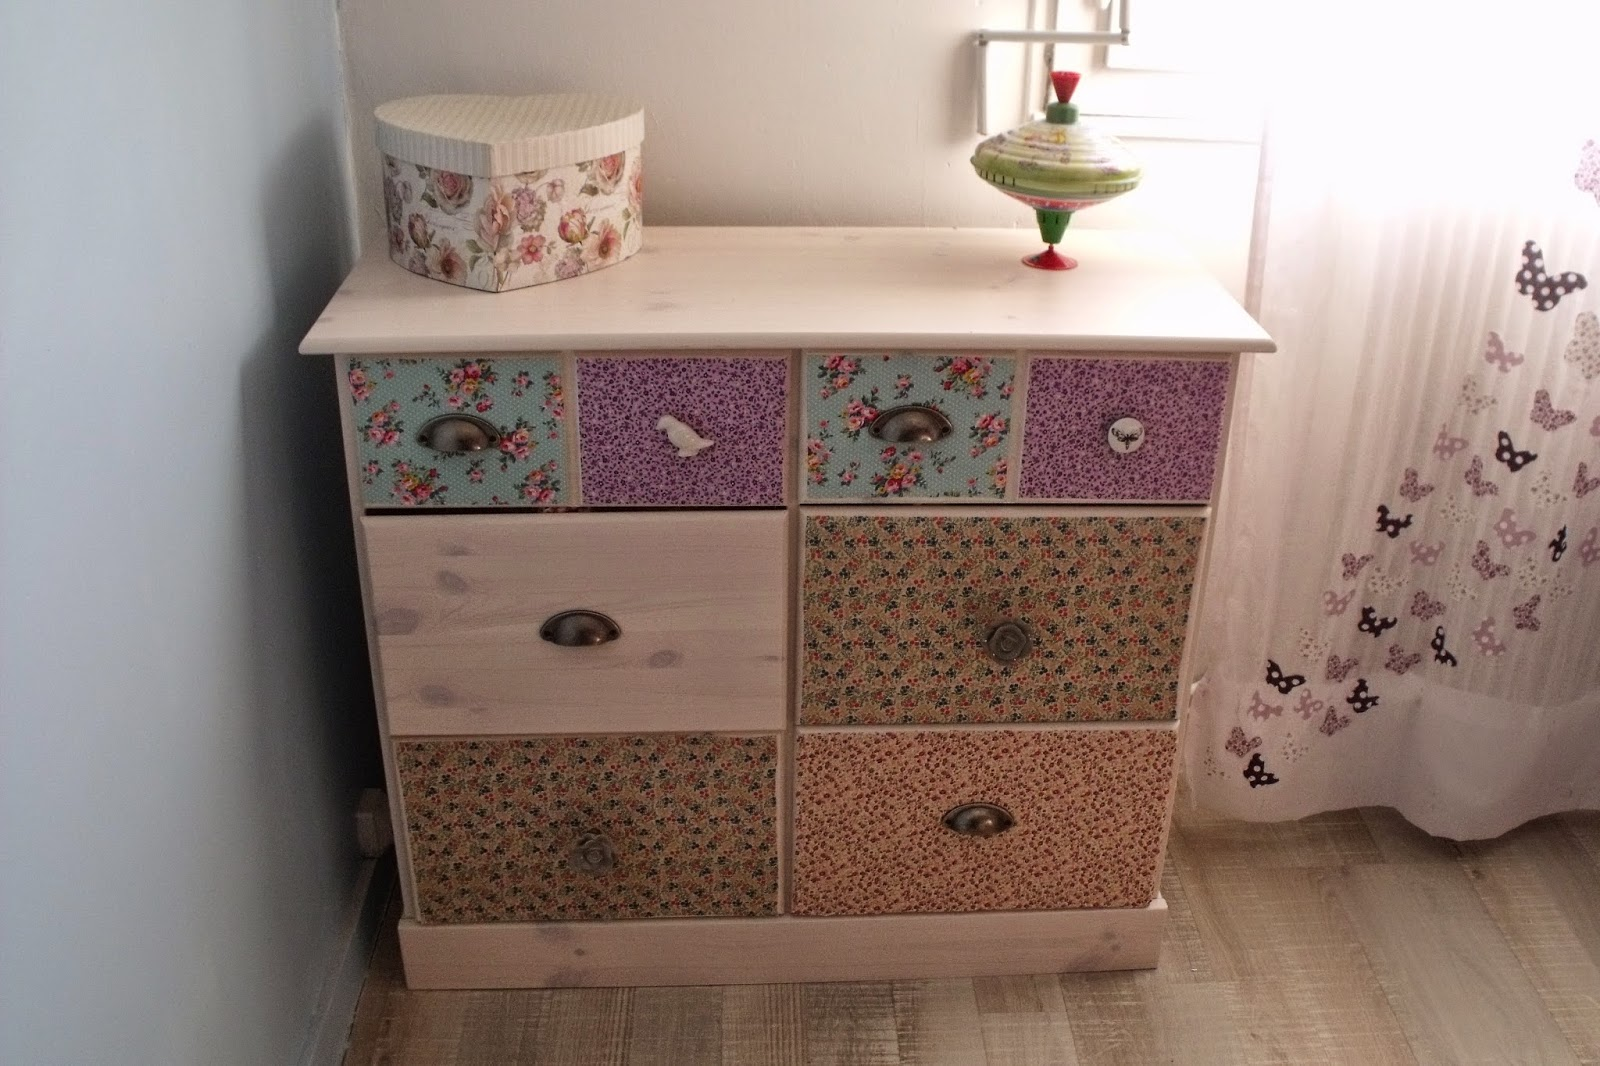 Lili joue maman bricole diy customisation commode liberty - Maisons du monde commode ...